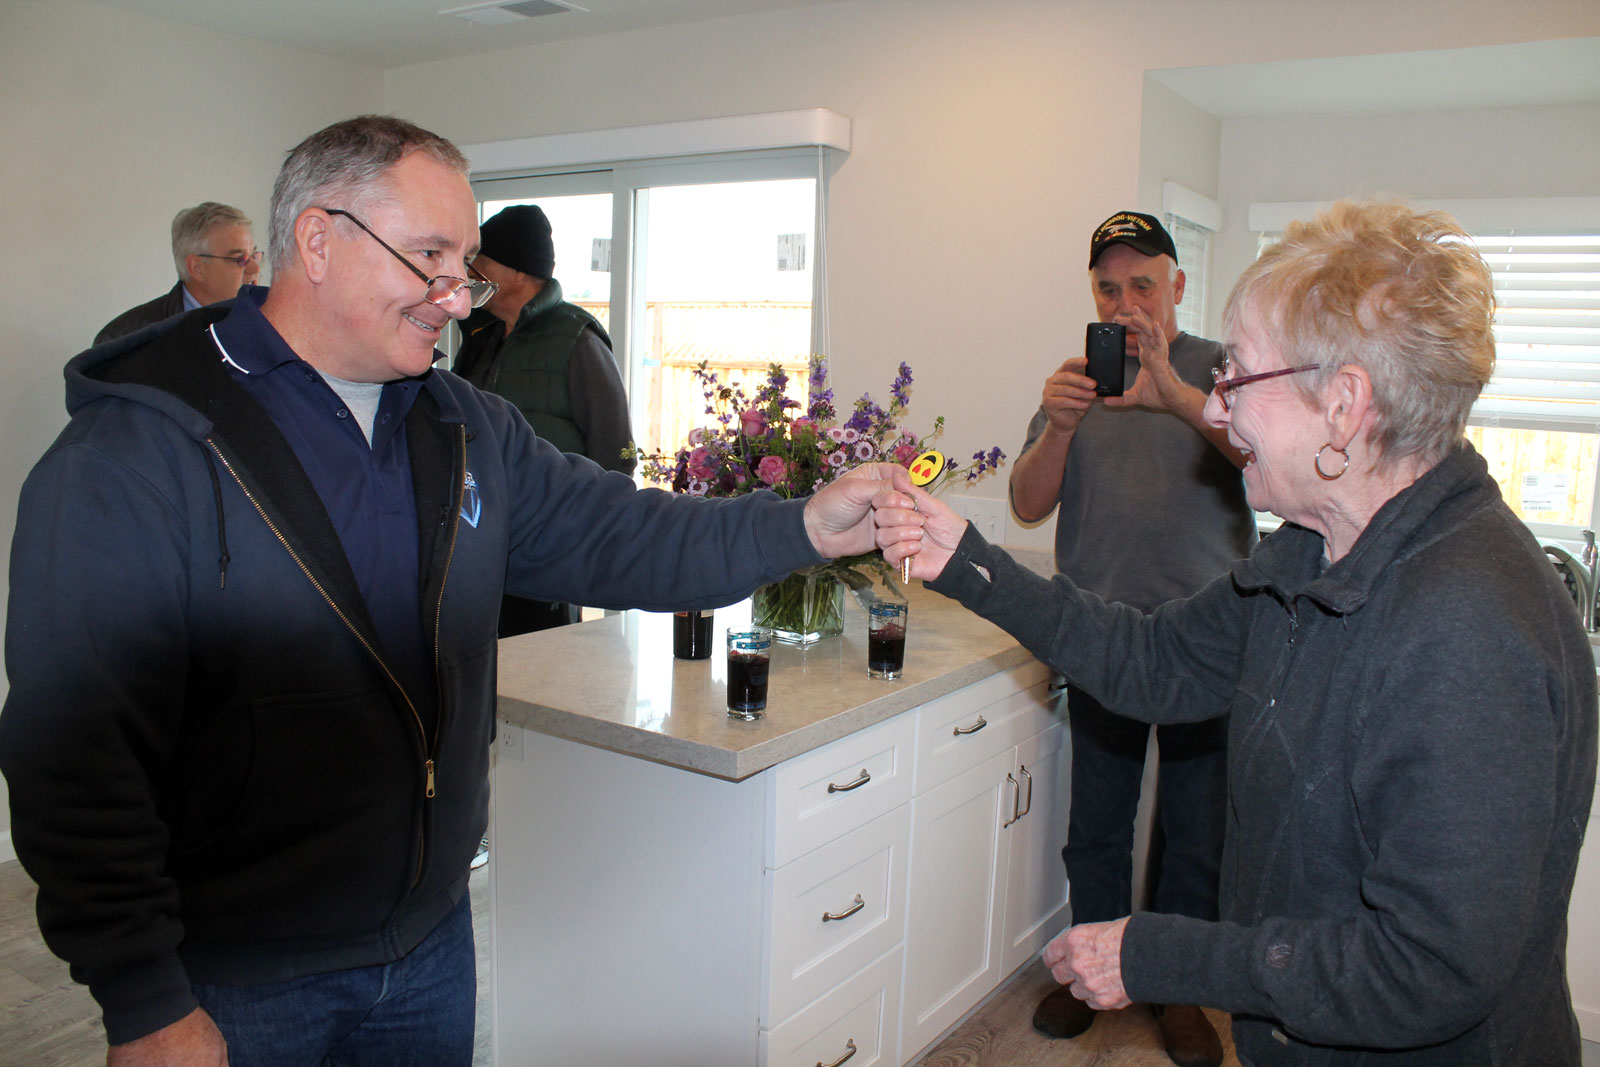 Prestige Homes & Remodel hands over keys to Jacque's newly rebuilt home in Santa Rosa!